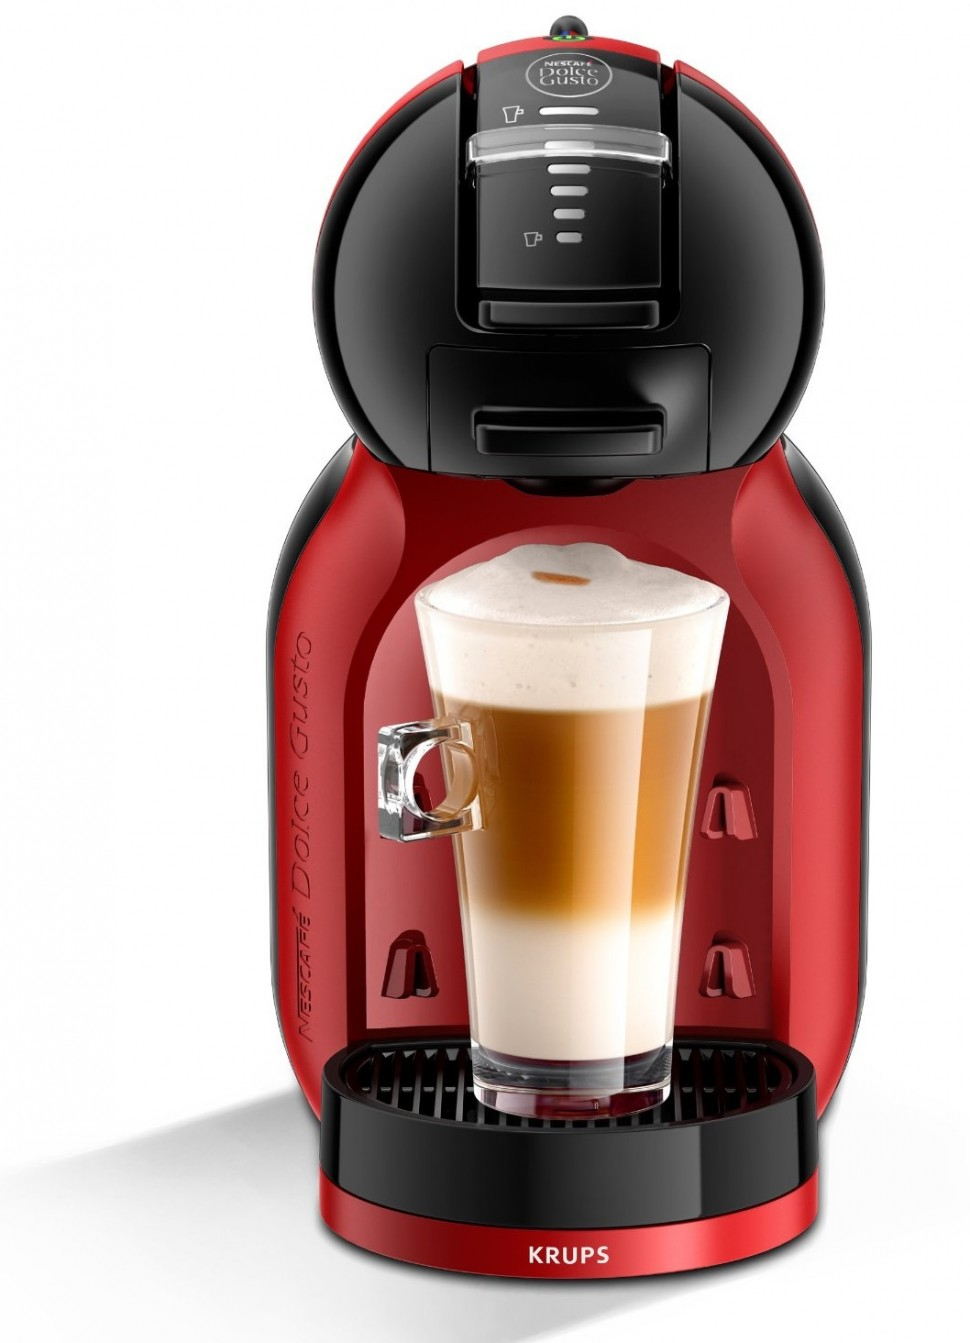 krups kp120h capsule coffe machine mimi me nescafe dolce gusto red 1500w genuine ebay. Black Bedroom Furniture Sets. Home Design Ideas